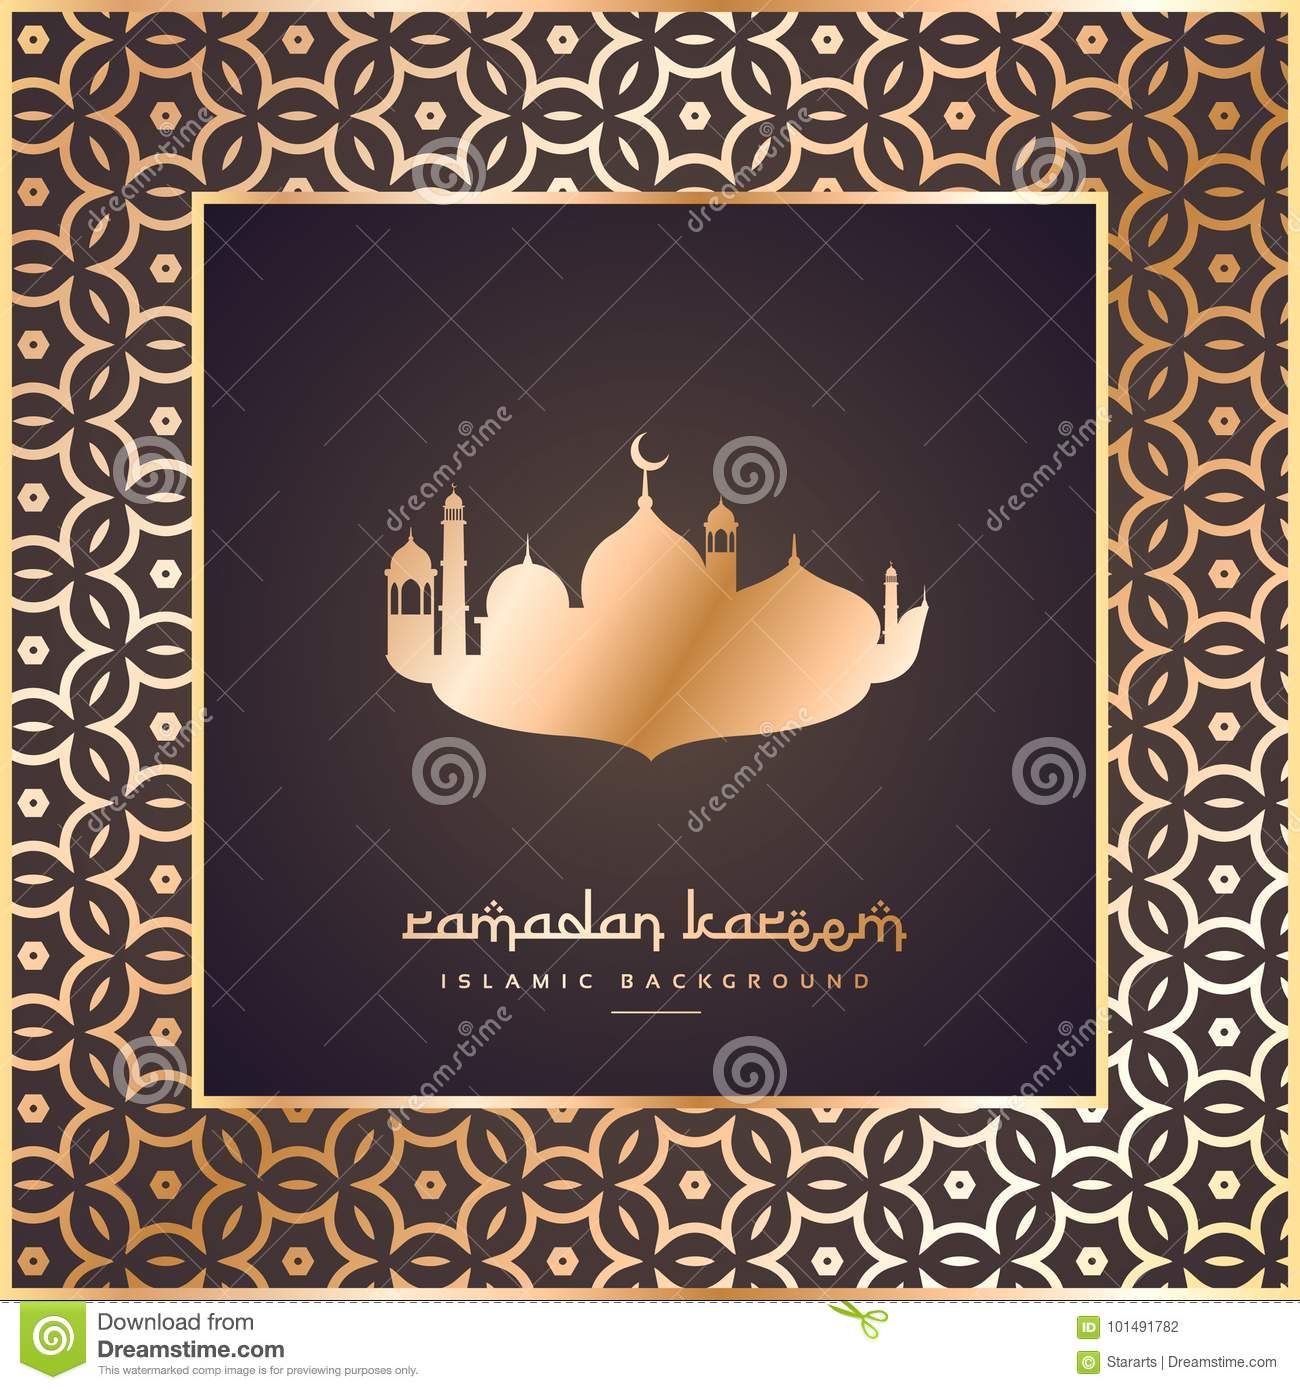 border masjid stock illustrations 221 border masjid stock illustrations vectors clipart dreamstime https www dreamstime com ramadan eid festival greeting pattern border frame ramadan eid festival greeting pattern border frame vector image101491782